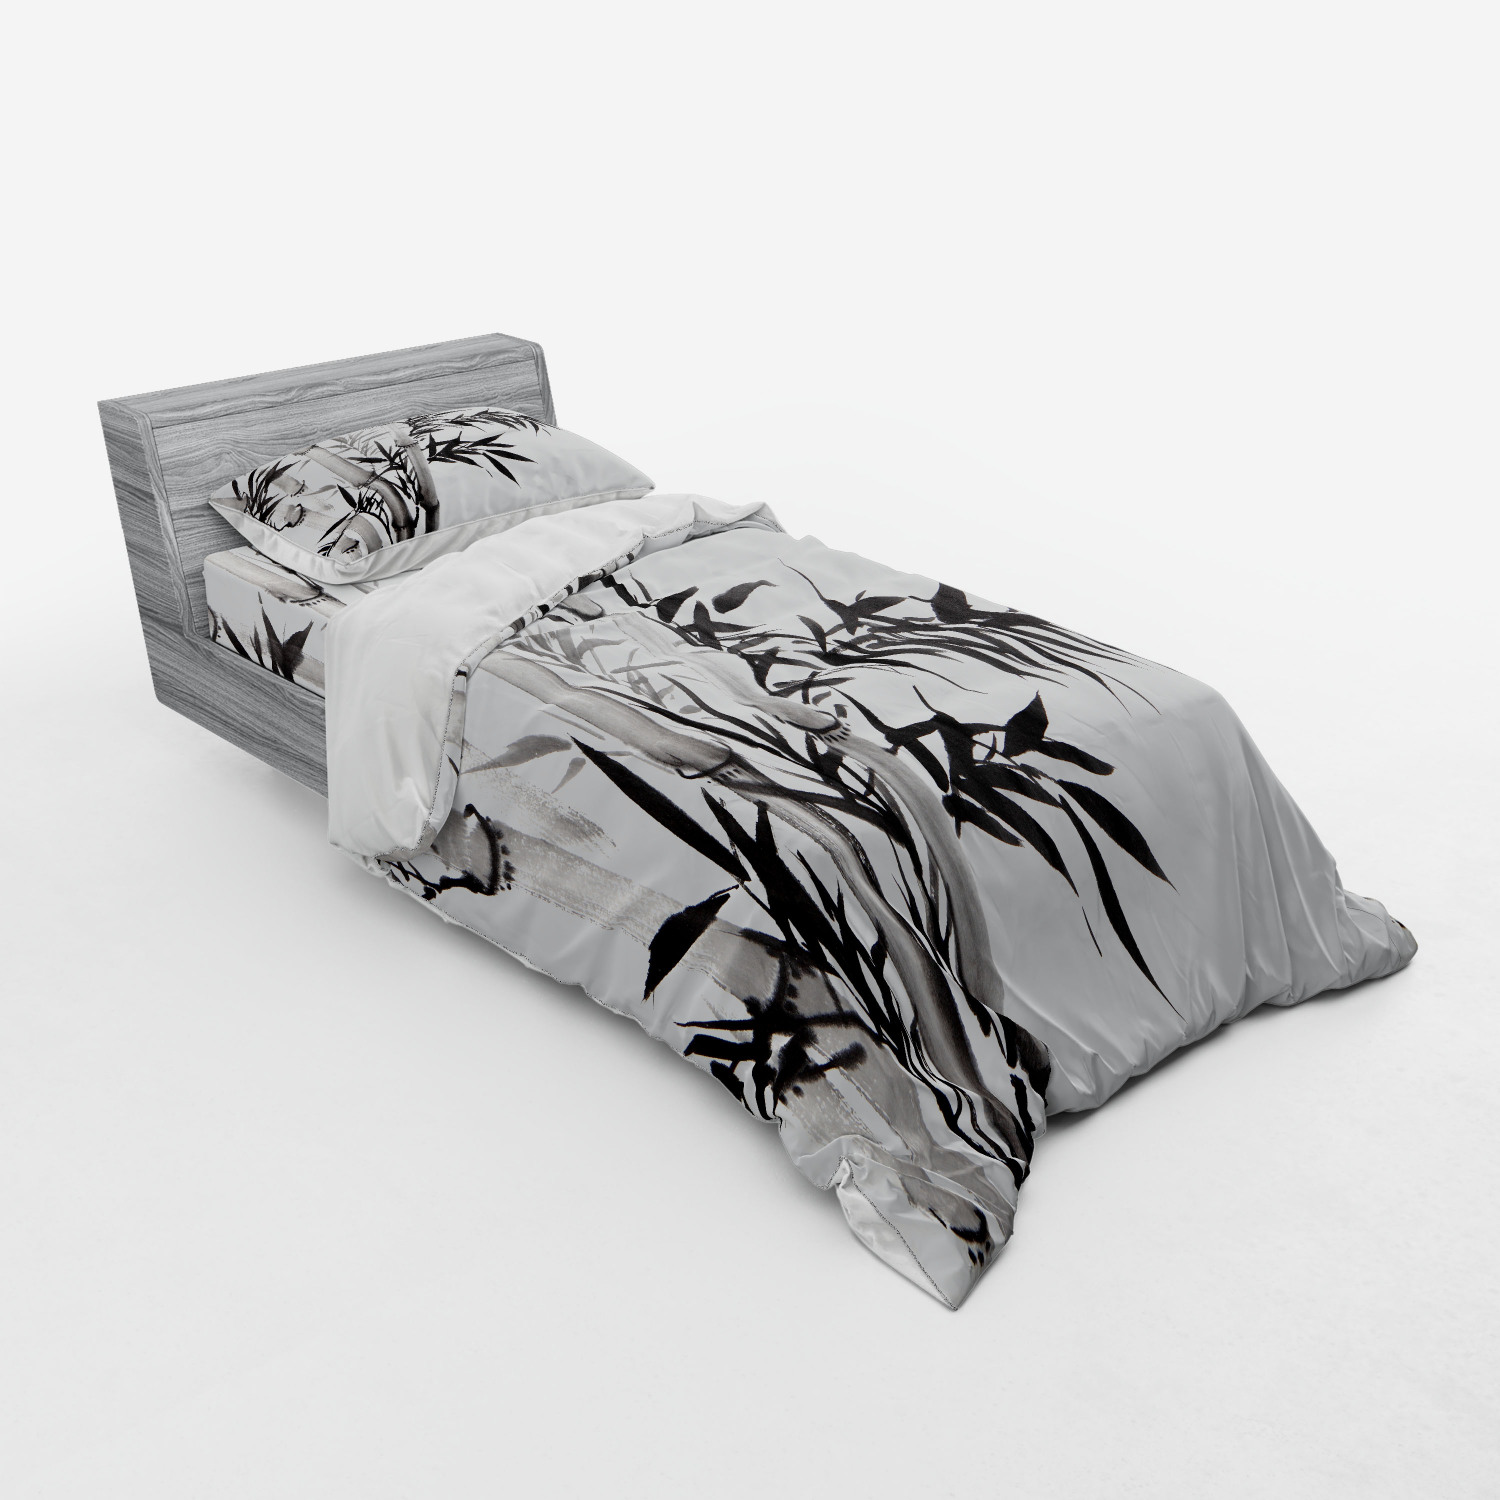 thumbnail 57 - Ambesonne Black White Art Bedding Set Duvet Cover Sham Fitted Sheet in 3 Sizes